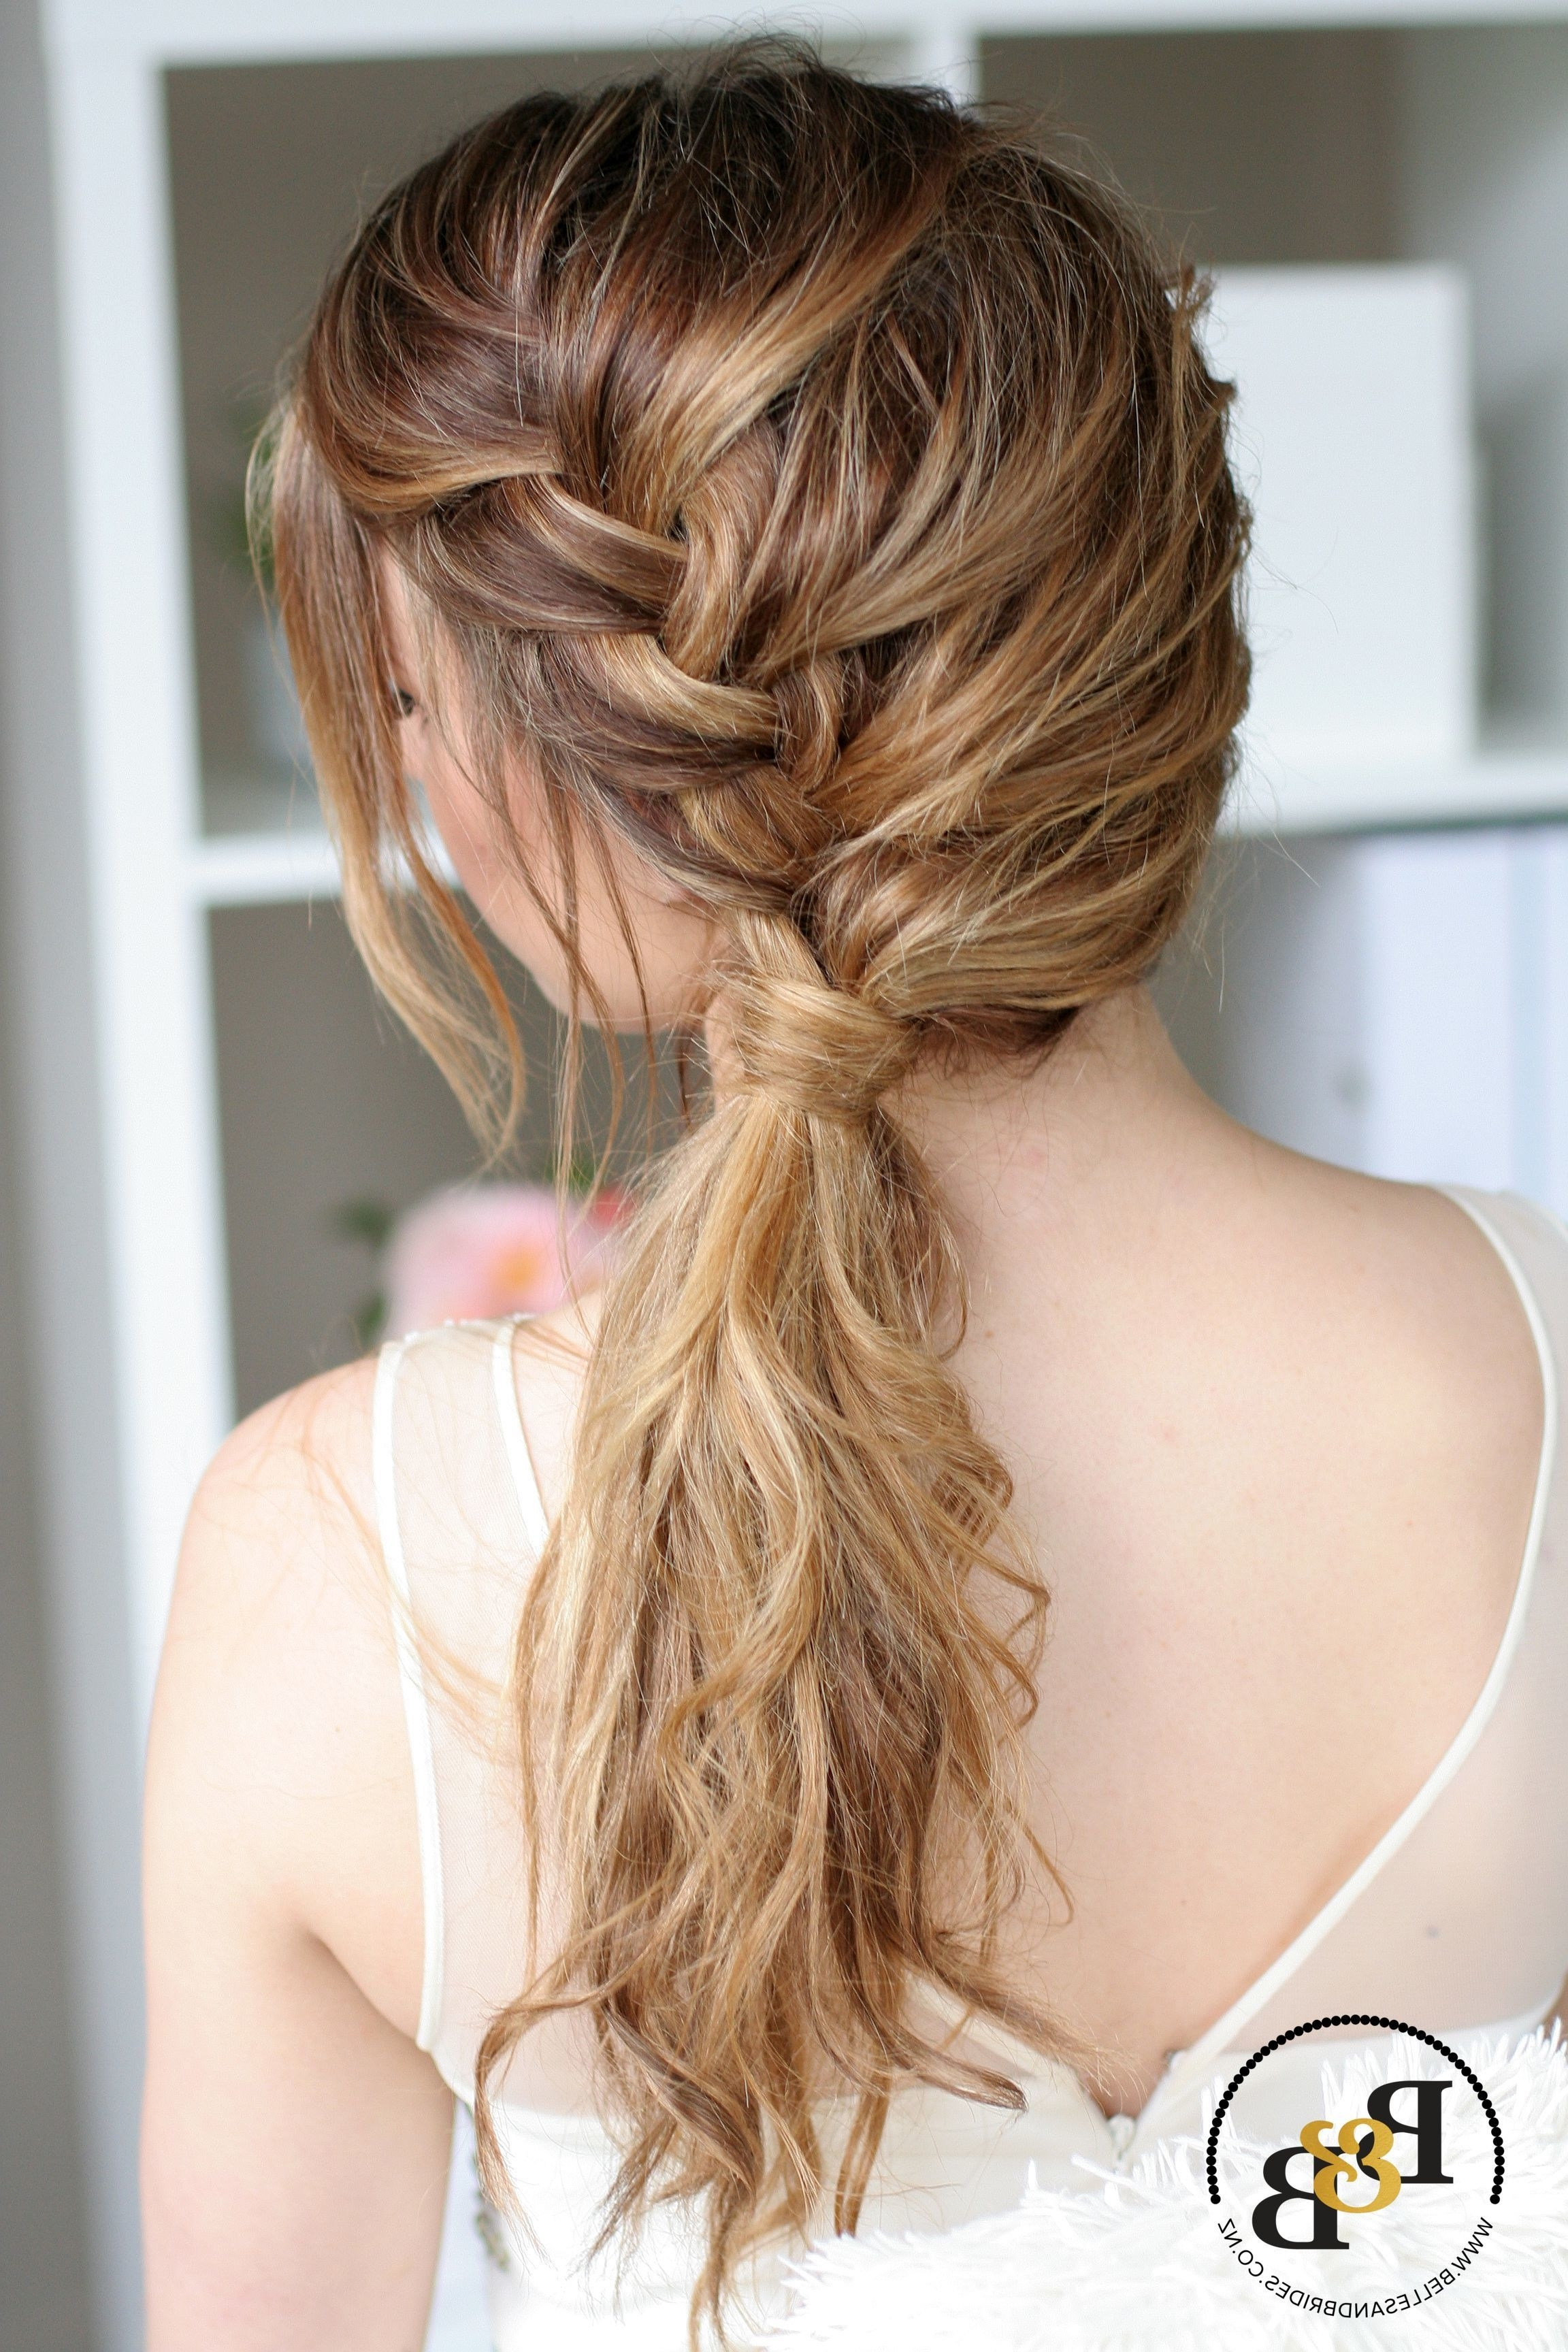 Wedding Hair Down With Braid #bridesmaidhairwithbraid Throughout Popular Braided Hairstyles For Bridesmaid (View 15 of 15)